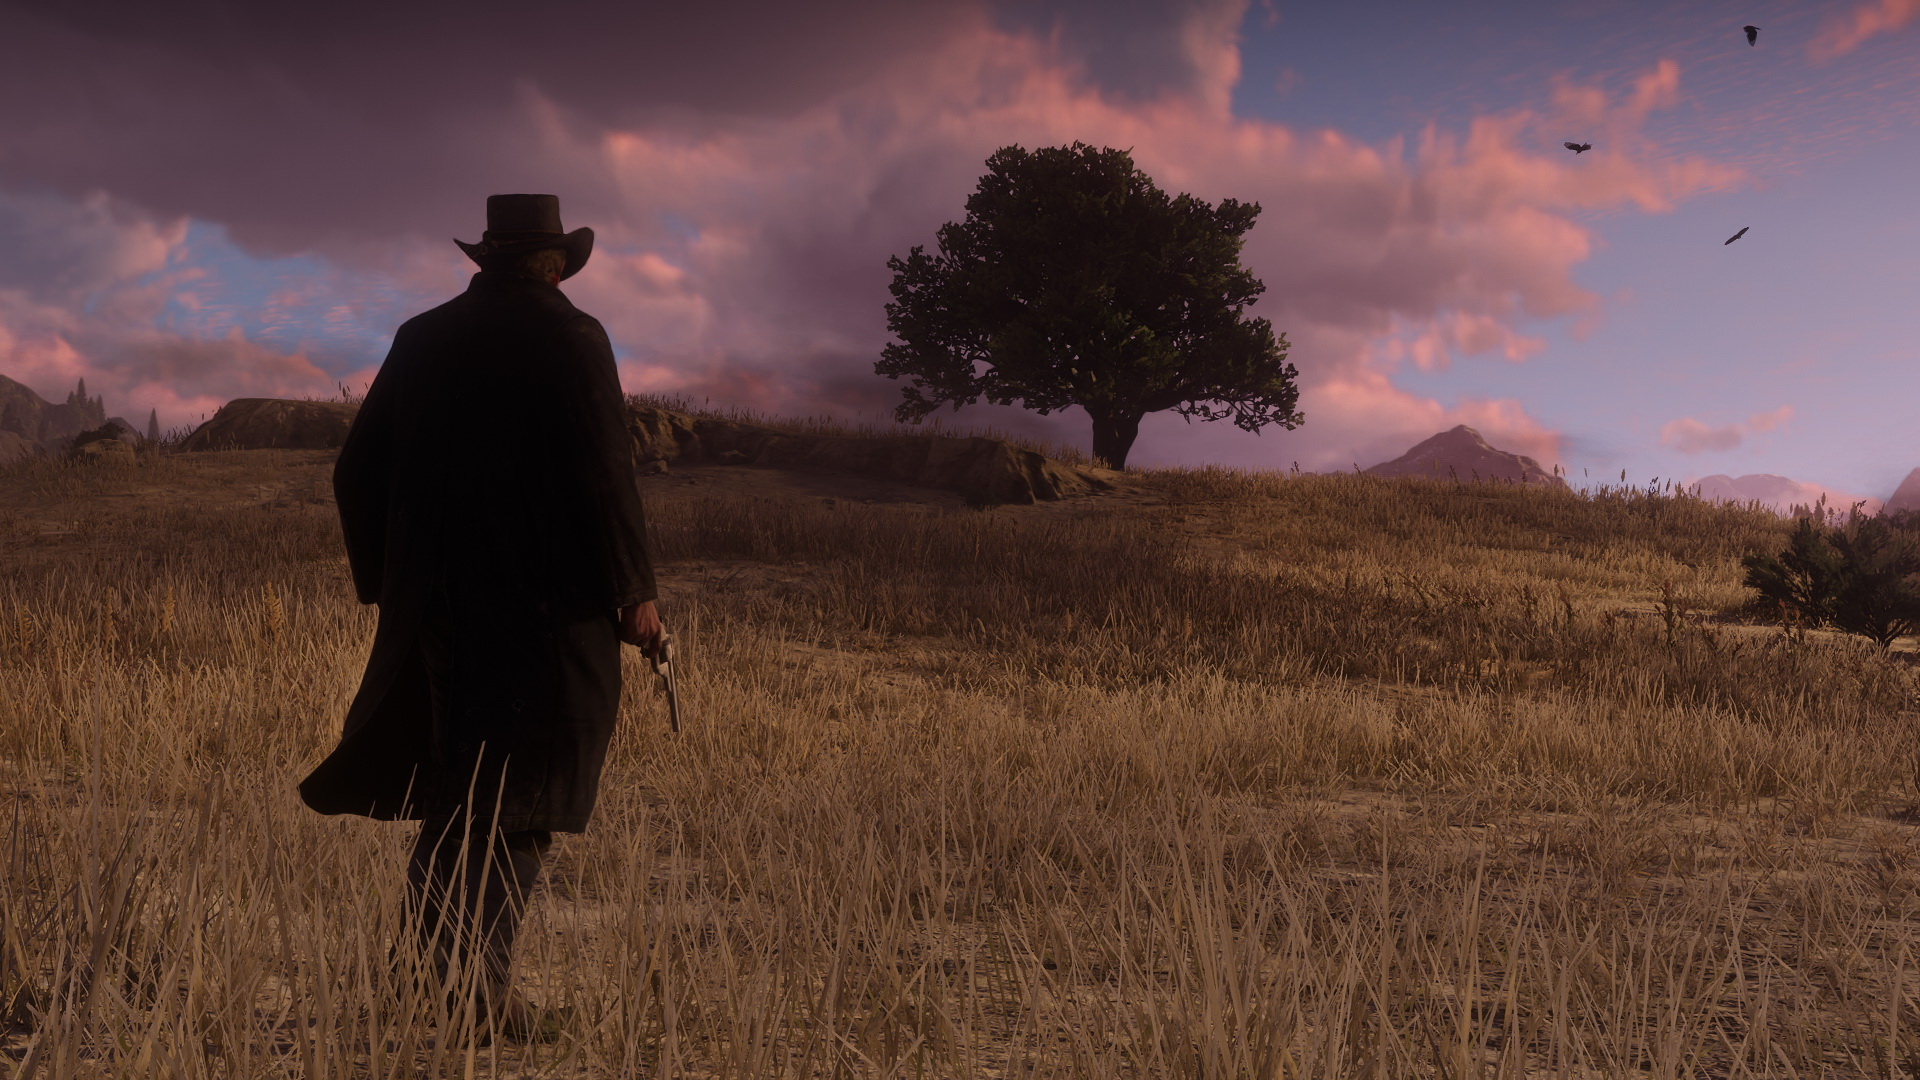 Red Dead Redemption 2 Players Can Receive a Free Care Package Header Image